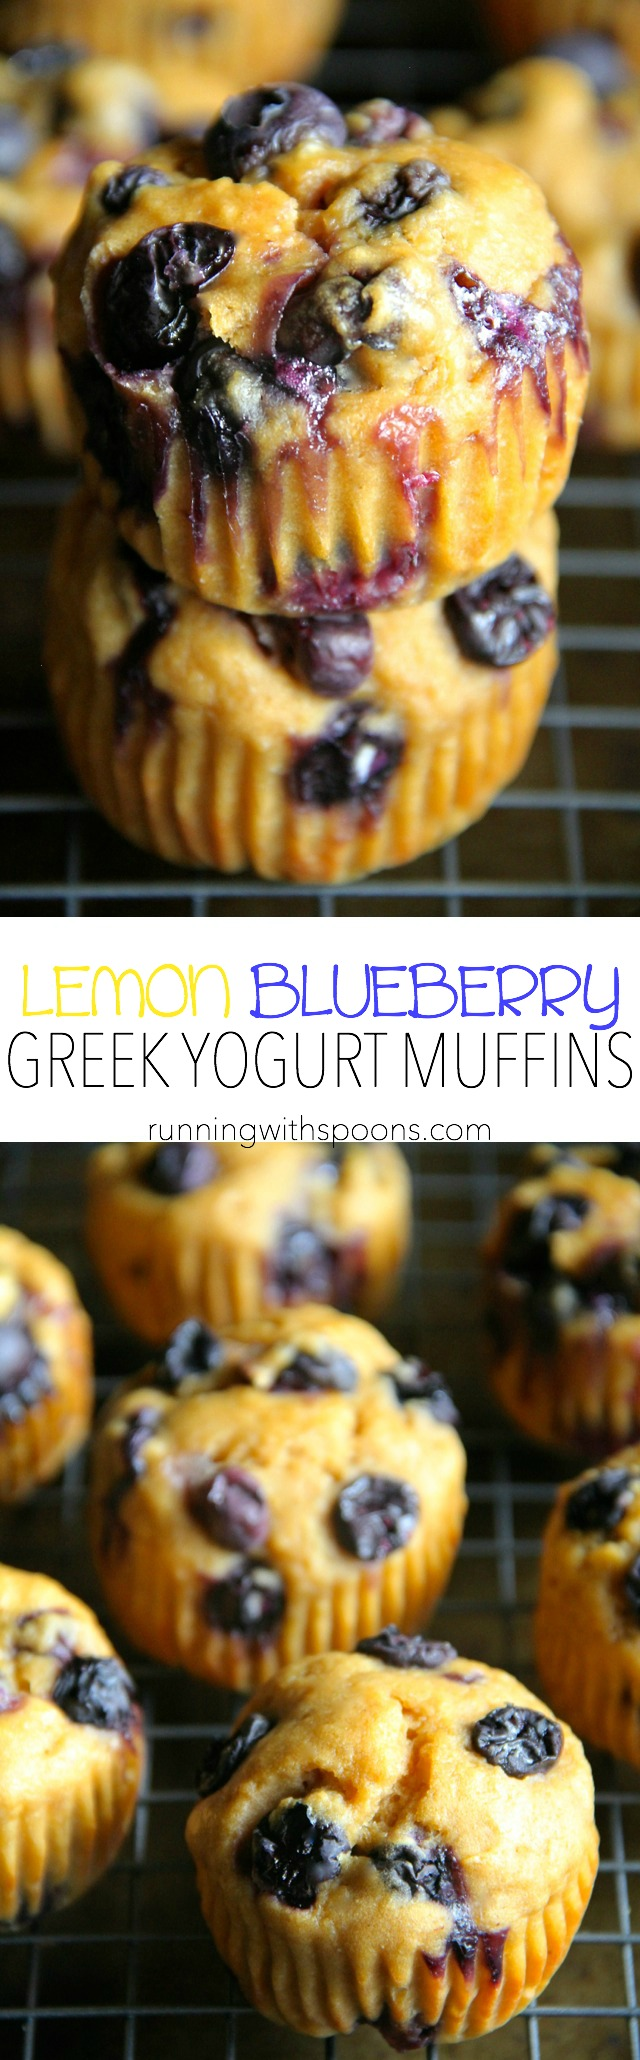 Lemon Blueberry Greek Yogurt Muffins -- soft and tender muffins made with Greek yogurt and loaded with blueberries. These healthy muffins make a PERFECT breakfast or snack! || runningwithspoons.com